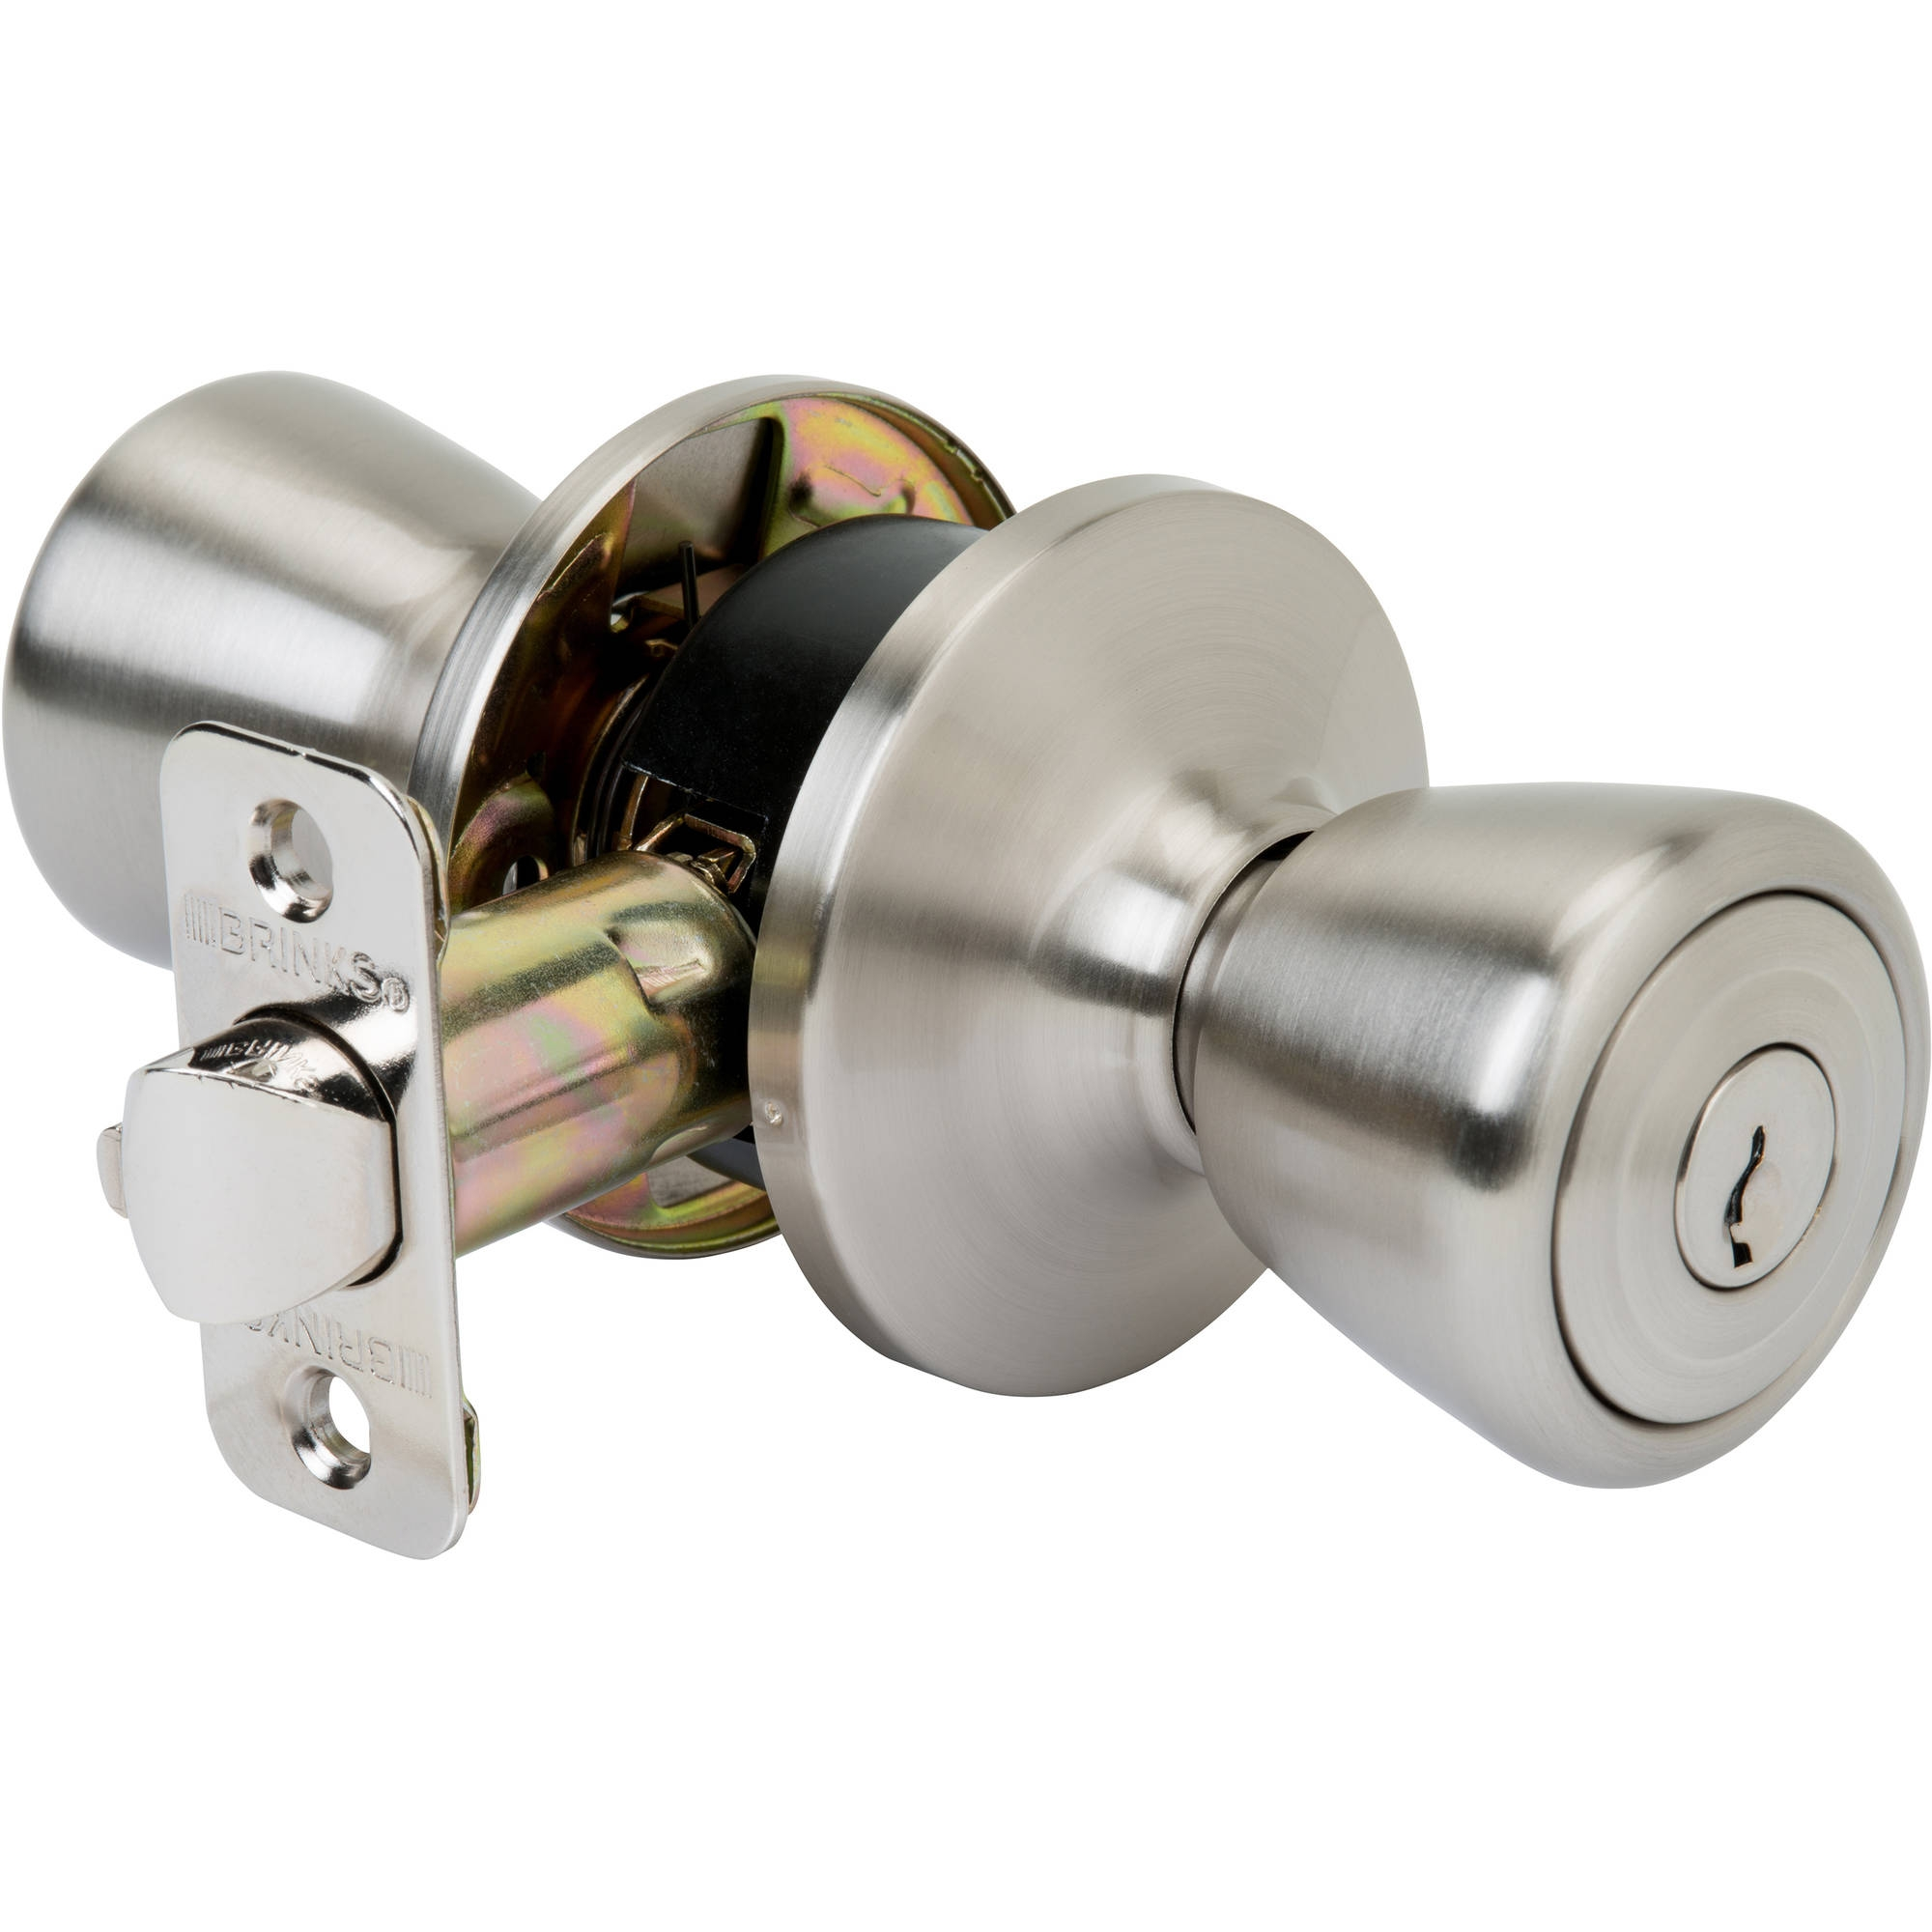 Brinks Door Knobs Satin Nickel